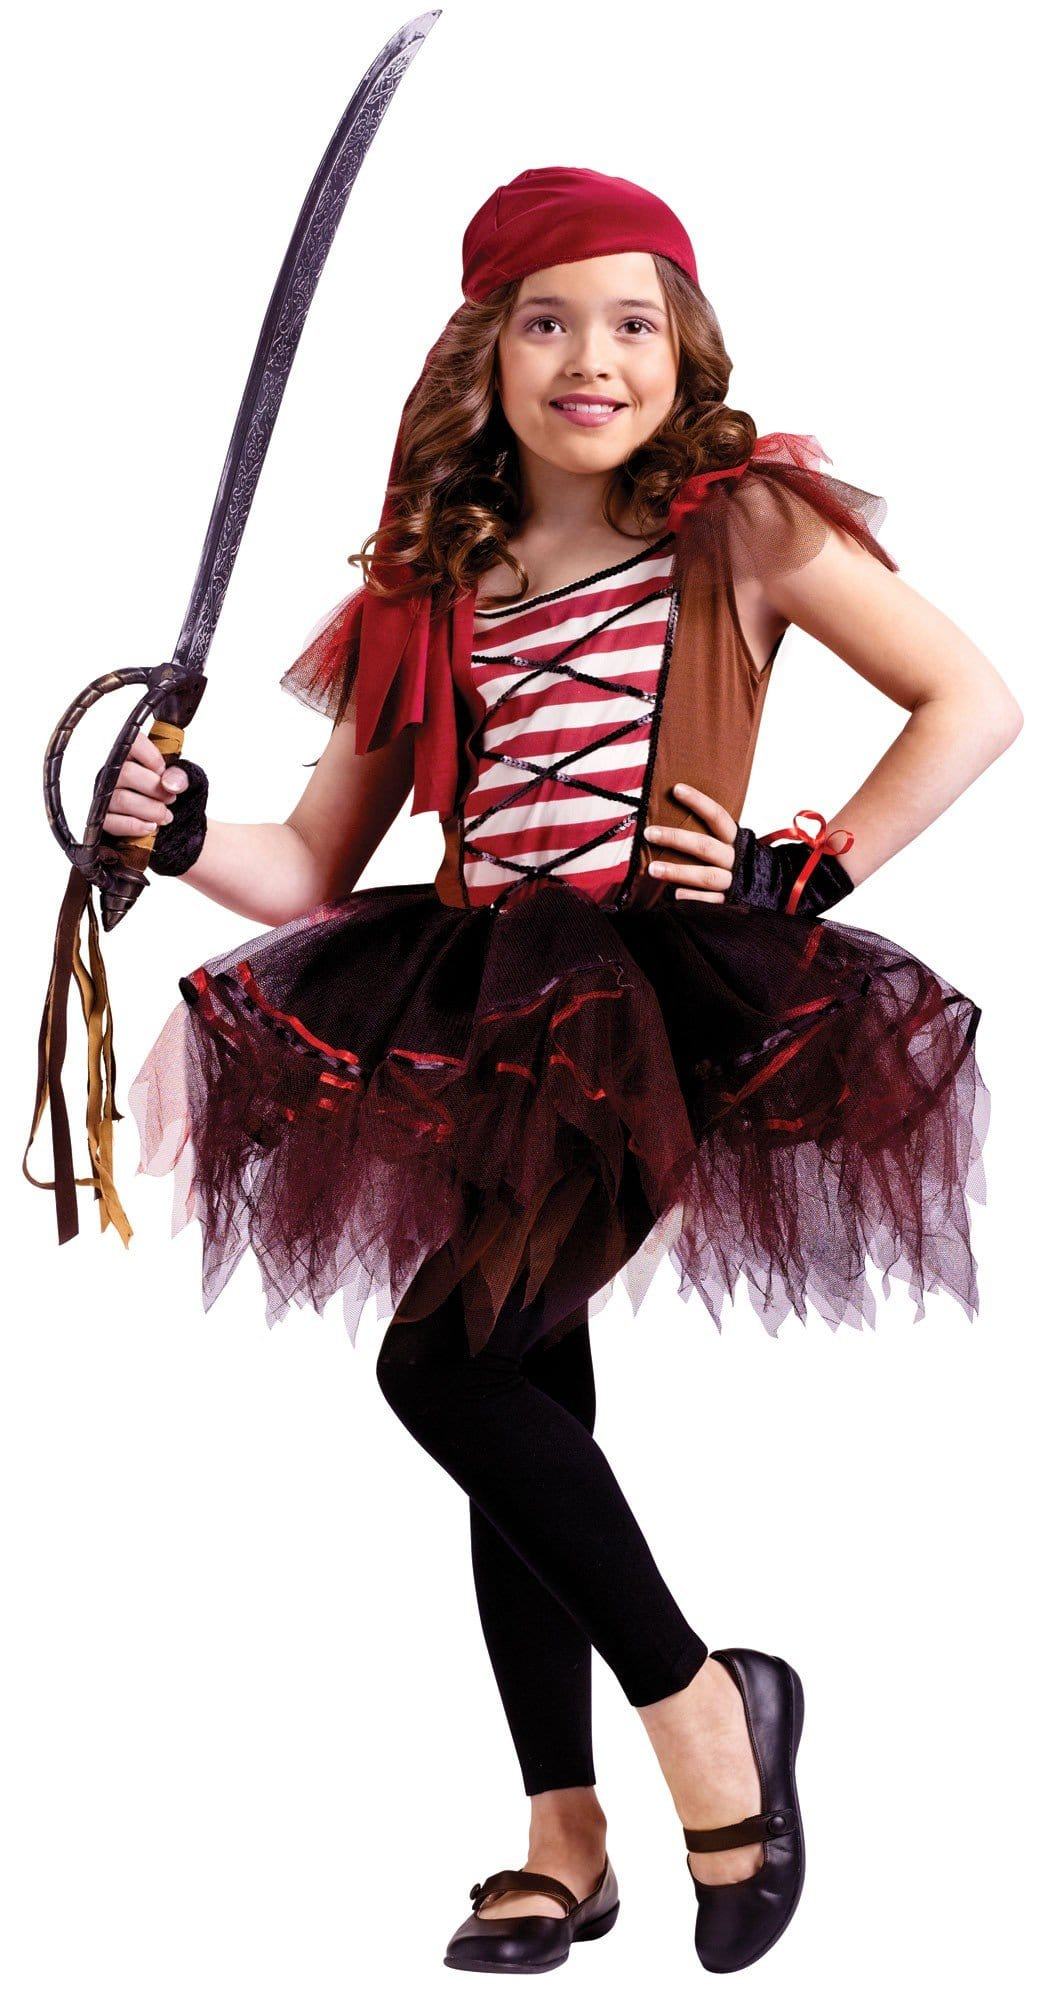 COSTUME PIRATE GIRLS - Christmas World